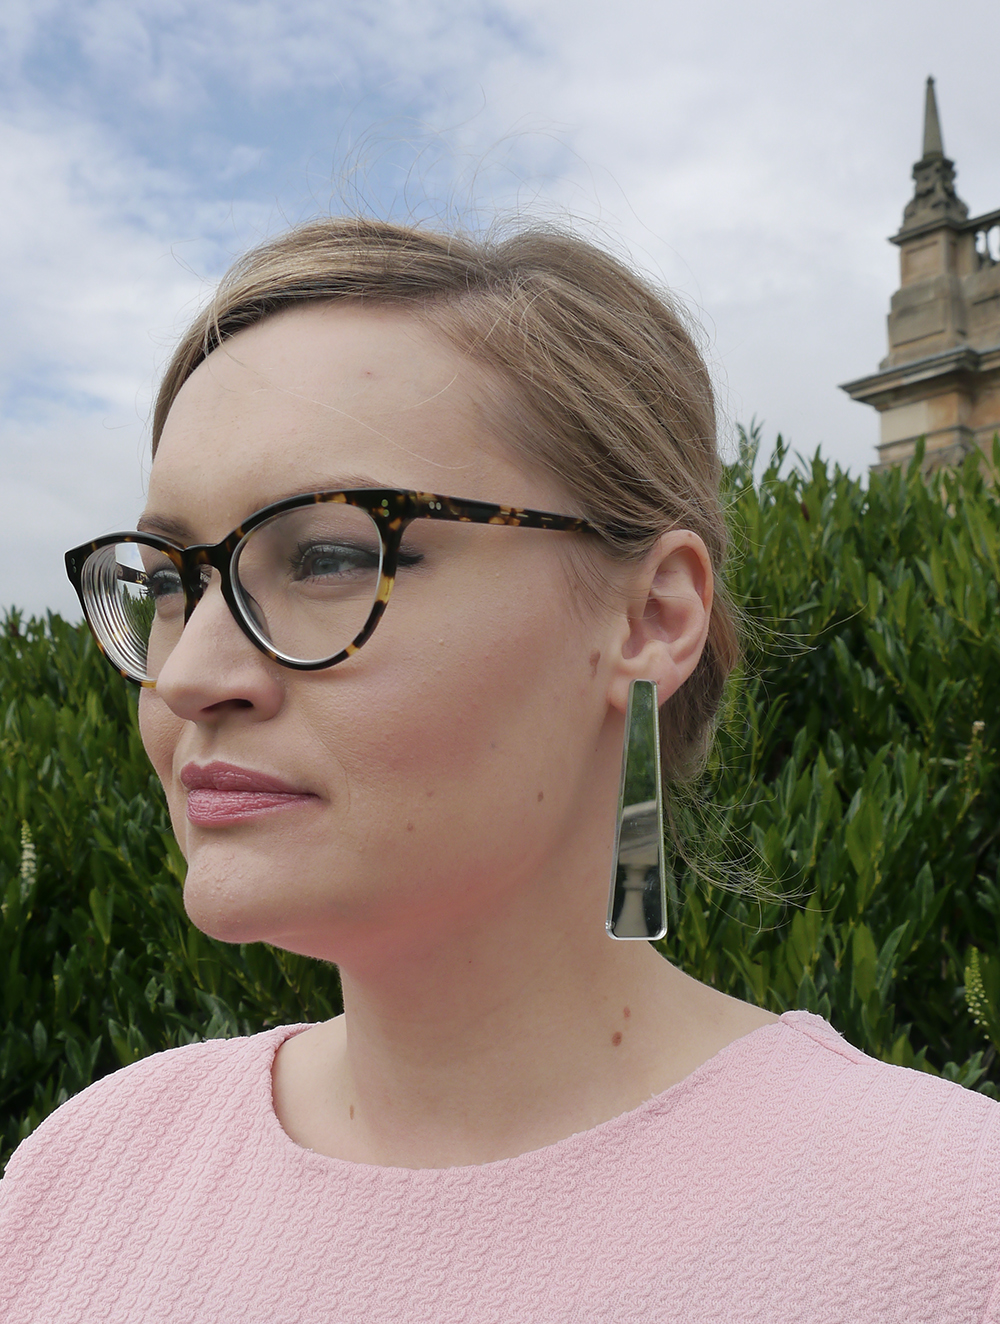 Wardrobe Conversations, Kimberley, styled by kimberley, candy pink sixties dress, vintage weigh and pay, dundee blogger, edinburgh blogger, scottish style blogger, vintage style scotland, IOLLA glasses review